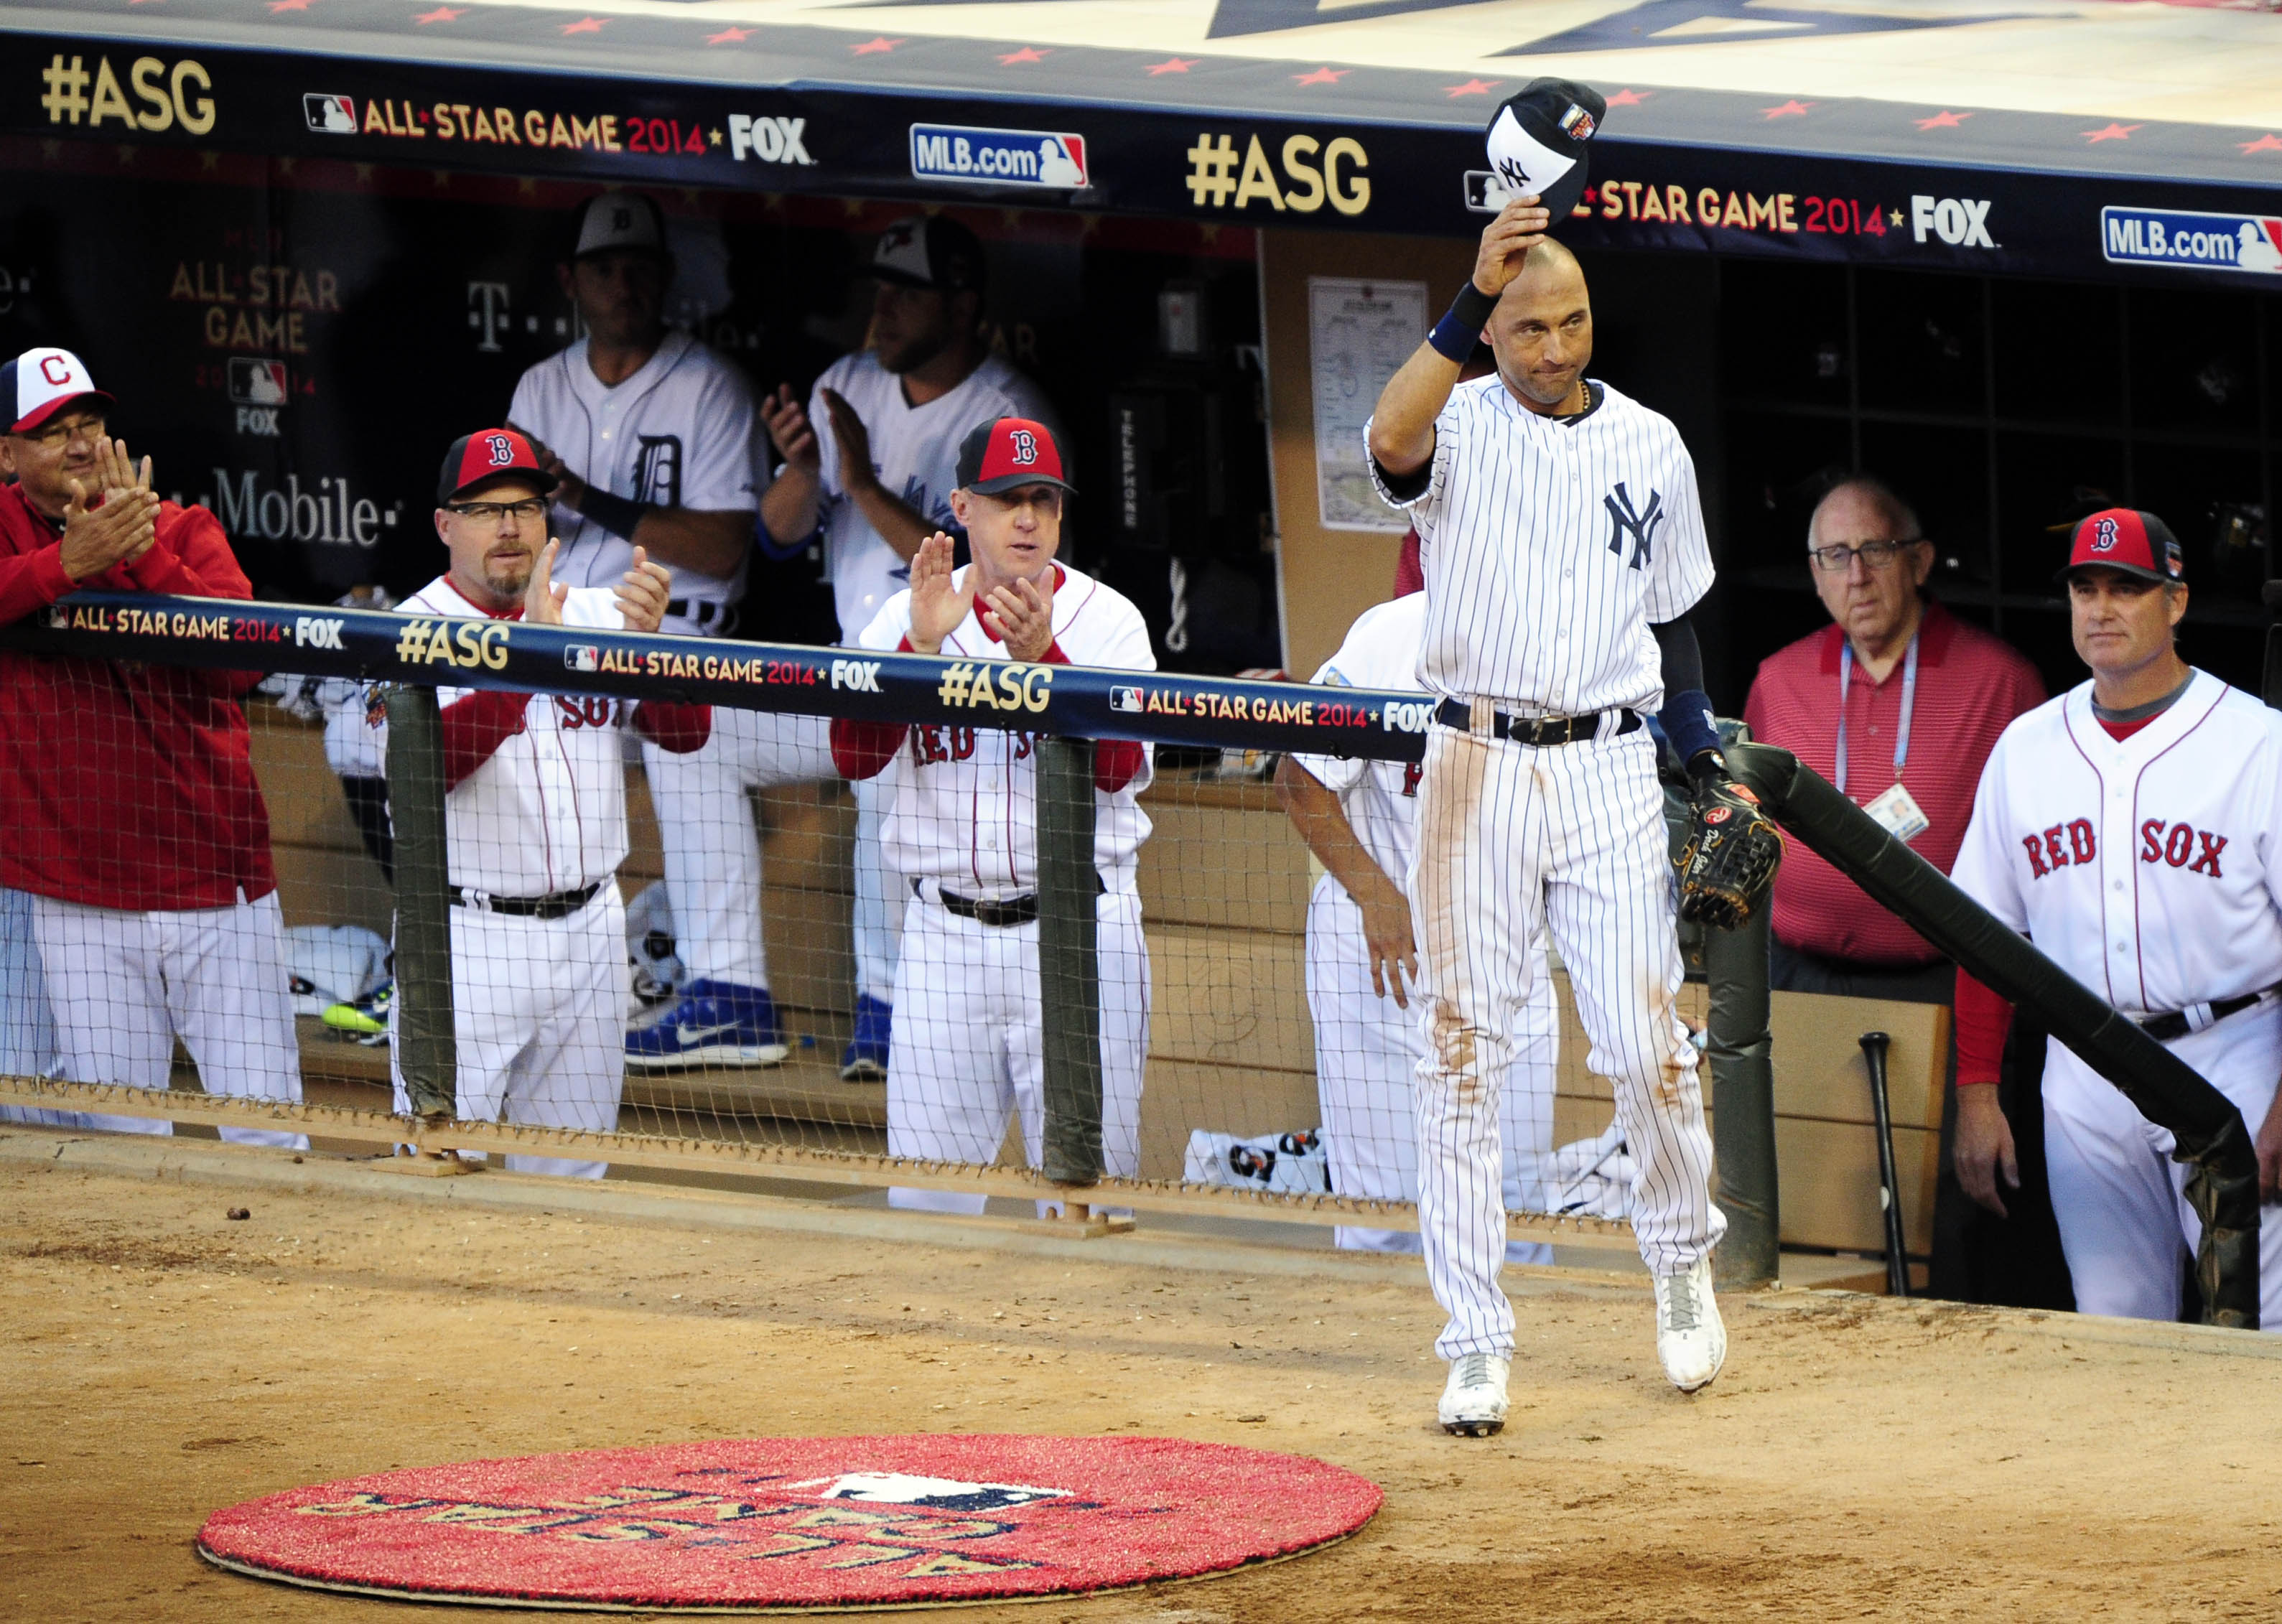 Derek Jeter takes a curtain call after being replaced in the fourth inning. (Jeff Curry, USA TODAY Sports)